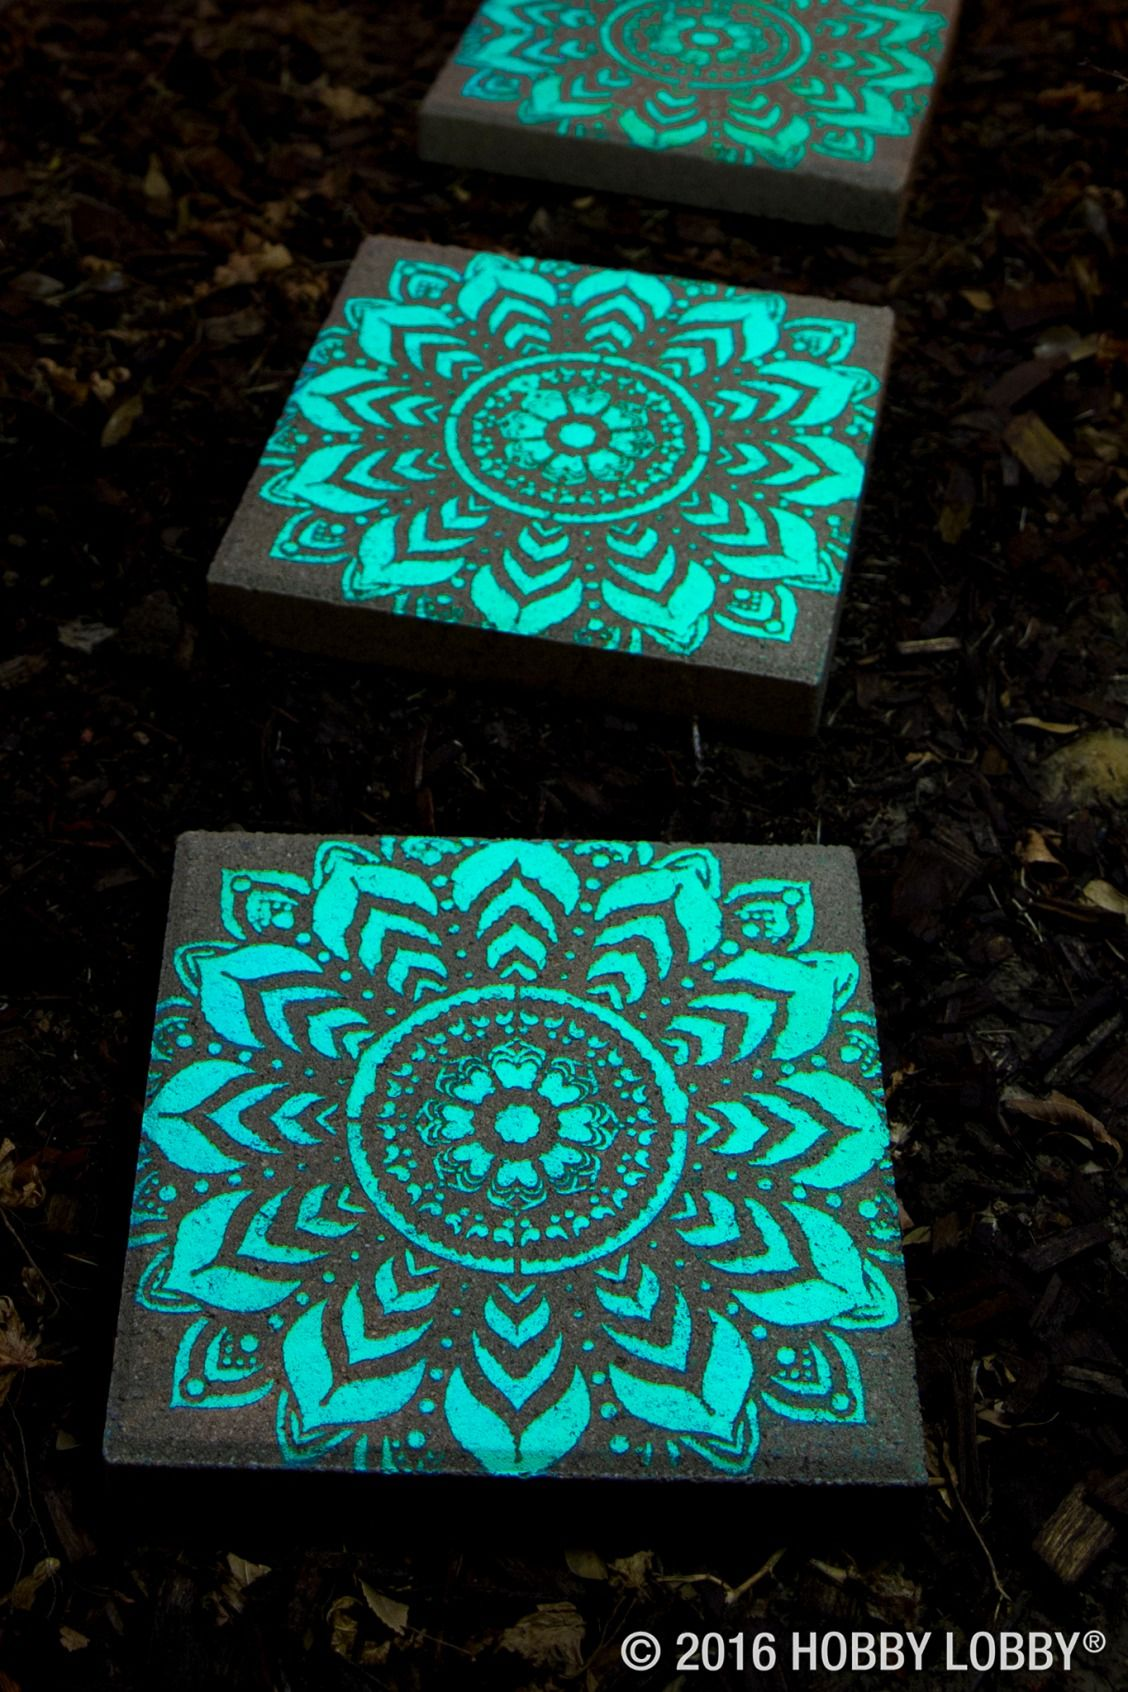 Summer Nights Feel More Festive With Glow In The Dark Accents! Can Make Glow  In The Dark Coasters With Wood, Cork, And Glow In The Dark Paint